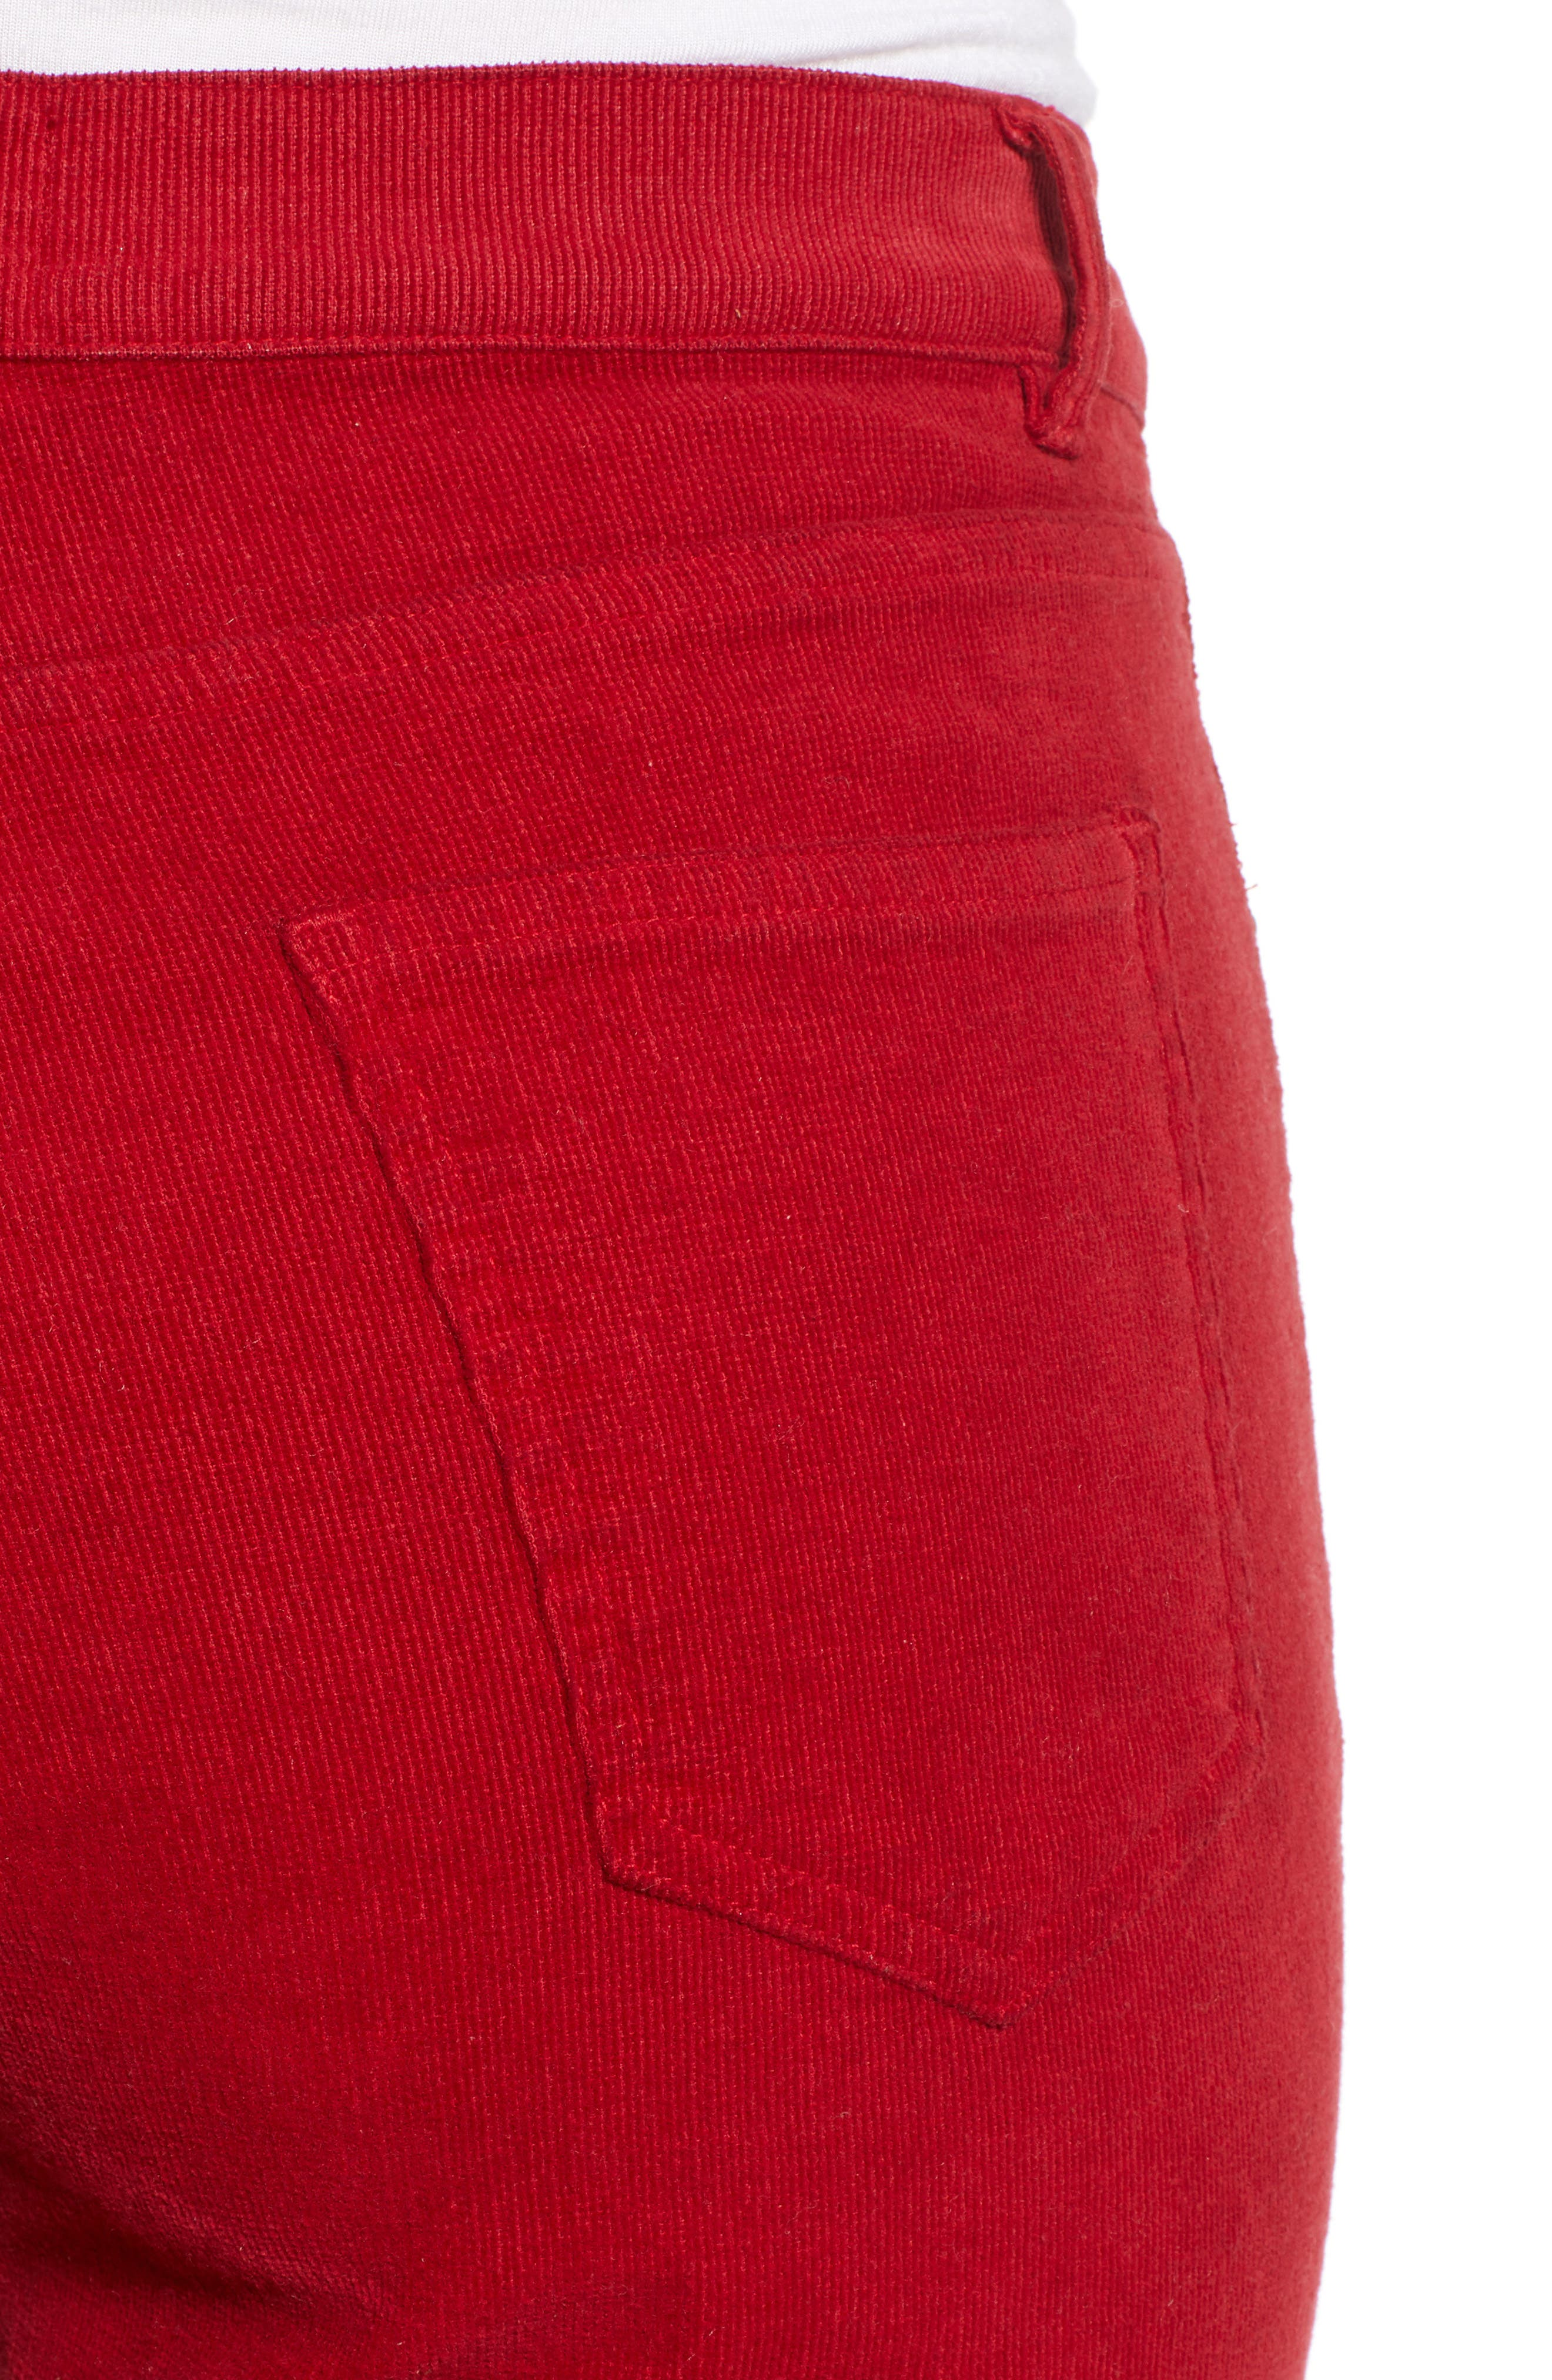 Corduroy Slim Crop Flare Pants,                             Alternate thumbnail 4, color,                             MINERAL RED